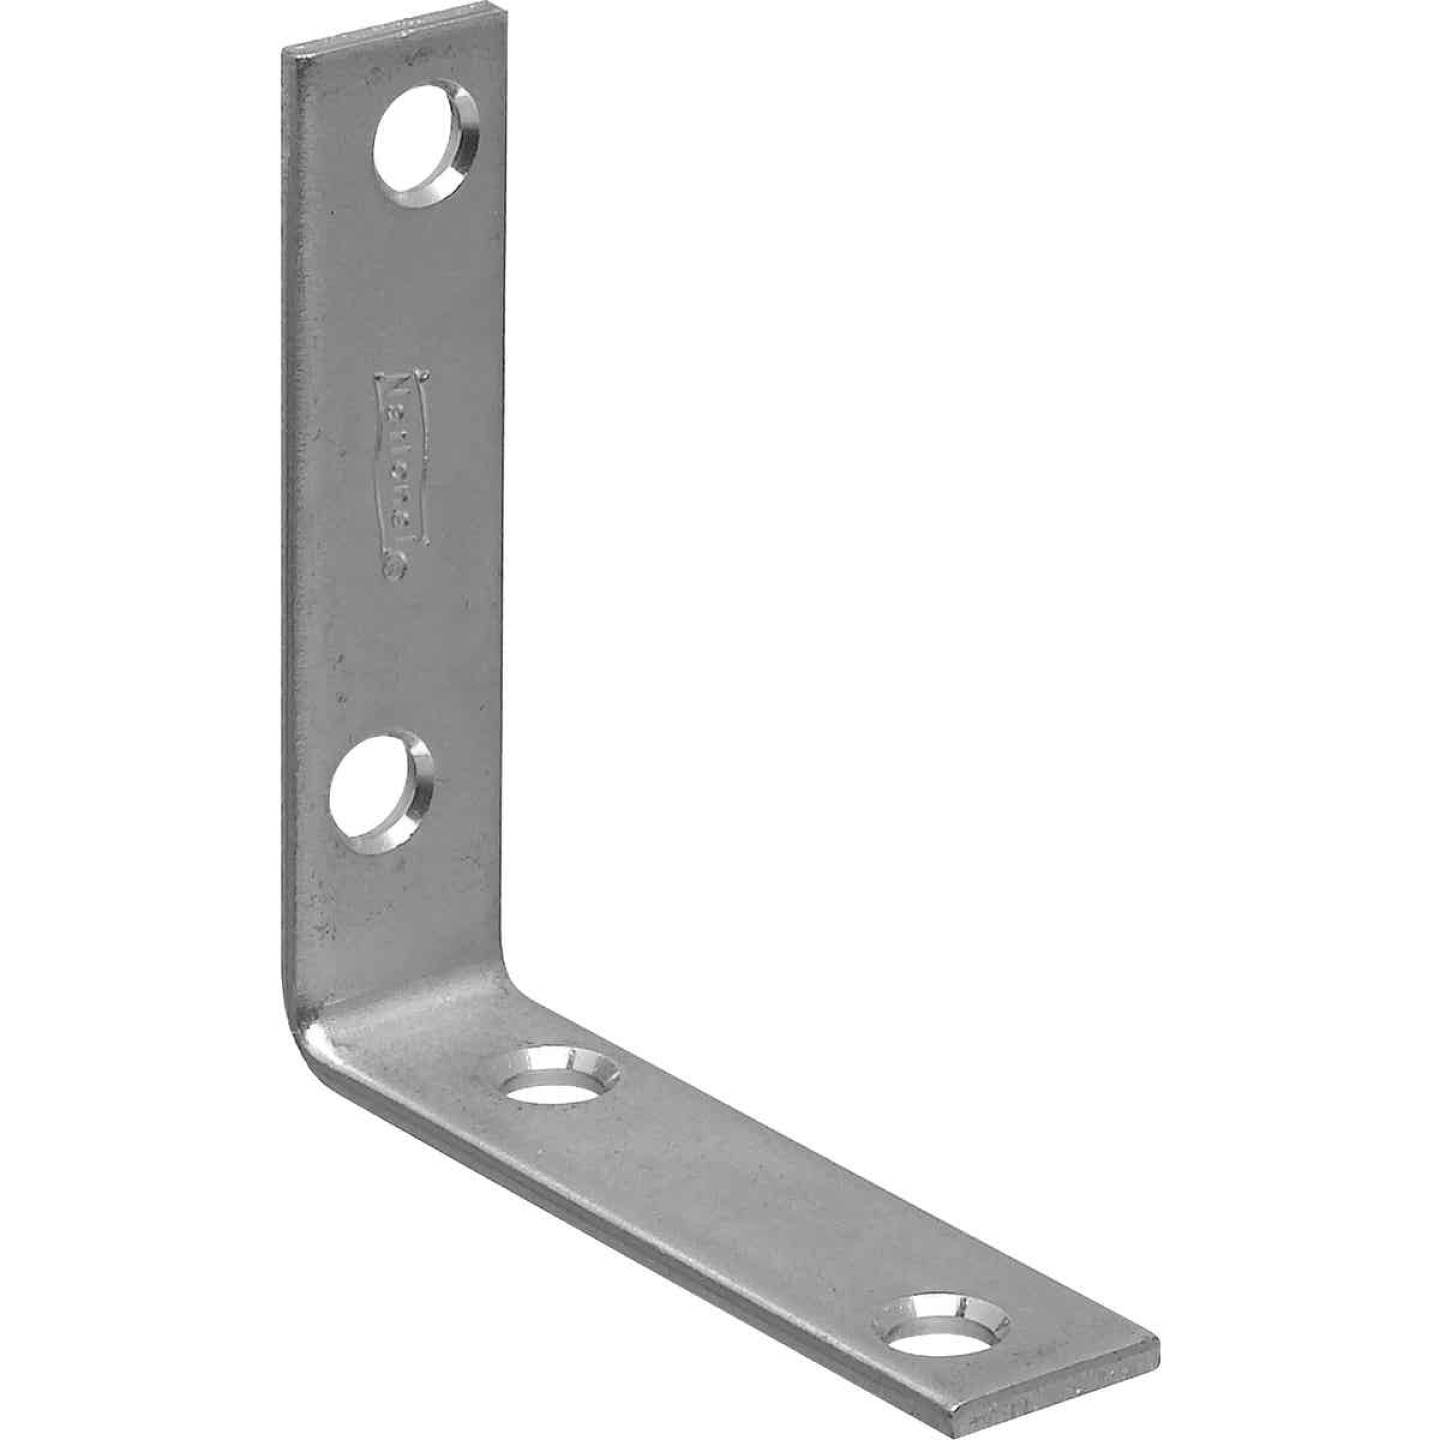 National Catalog 115 2-1/2 In. x 5/8 In. Zinc Corner Brace Image 1